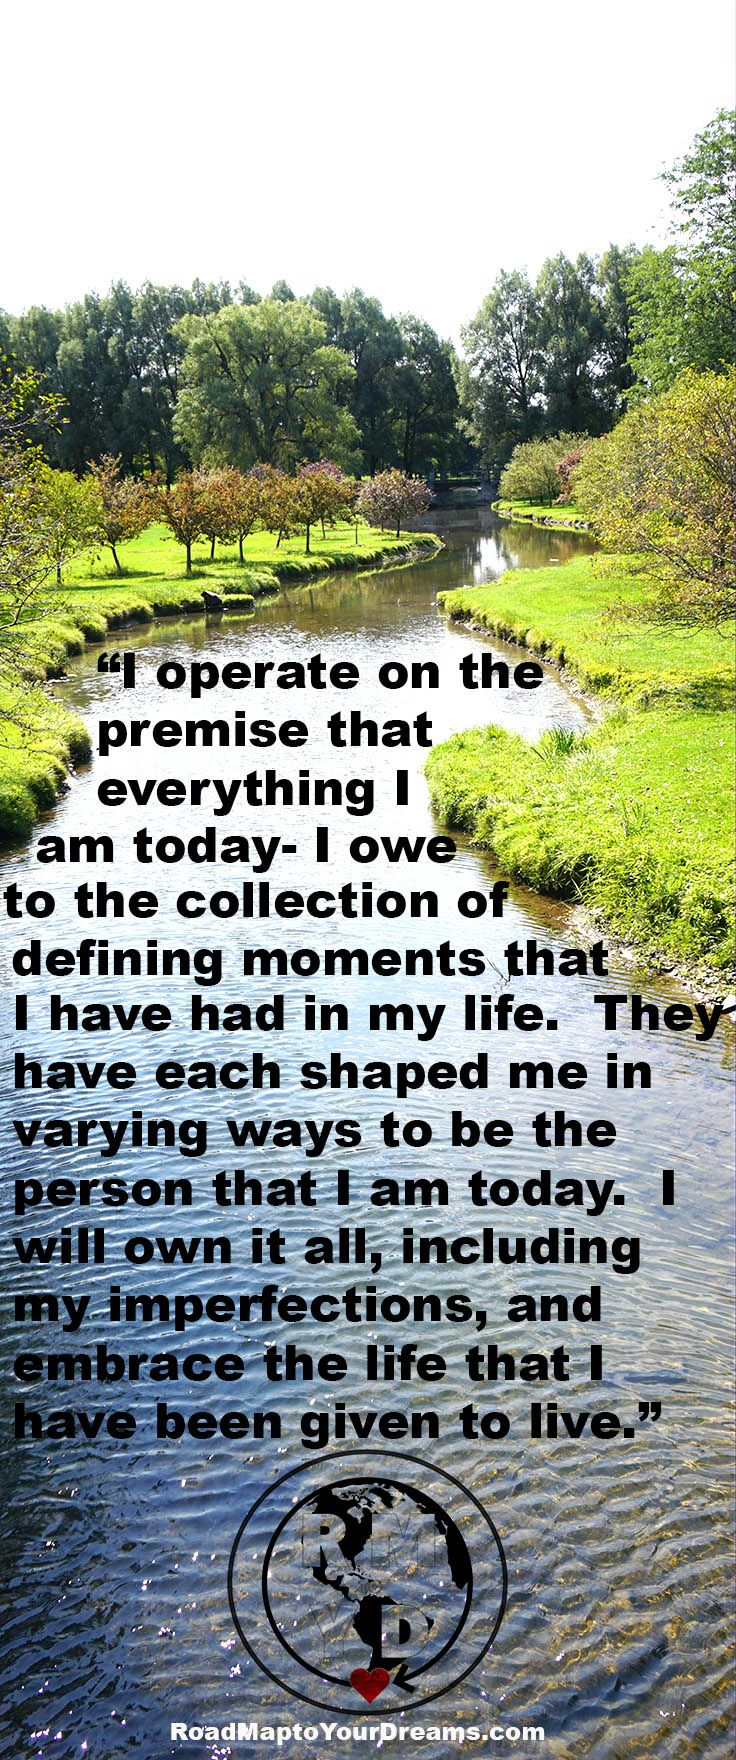 Everything I am today- I owe to the collection of defining moments that I have had in my life.  Embrace this life.  #mindheartsoulfreedom